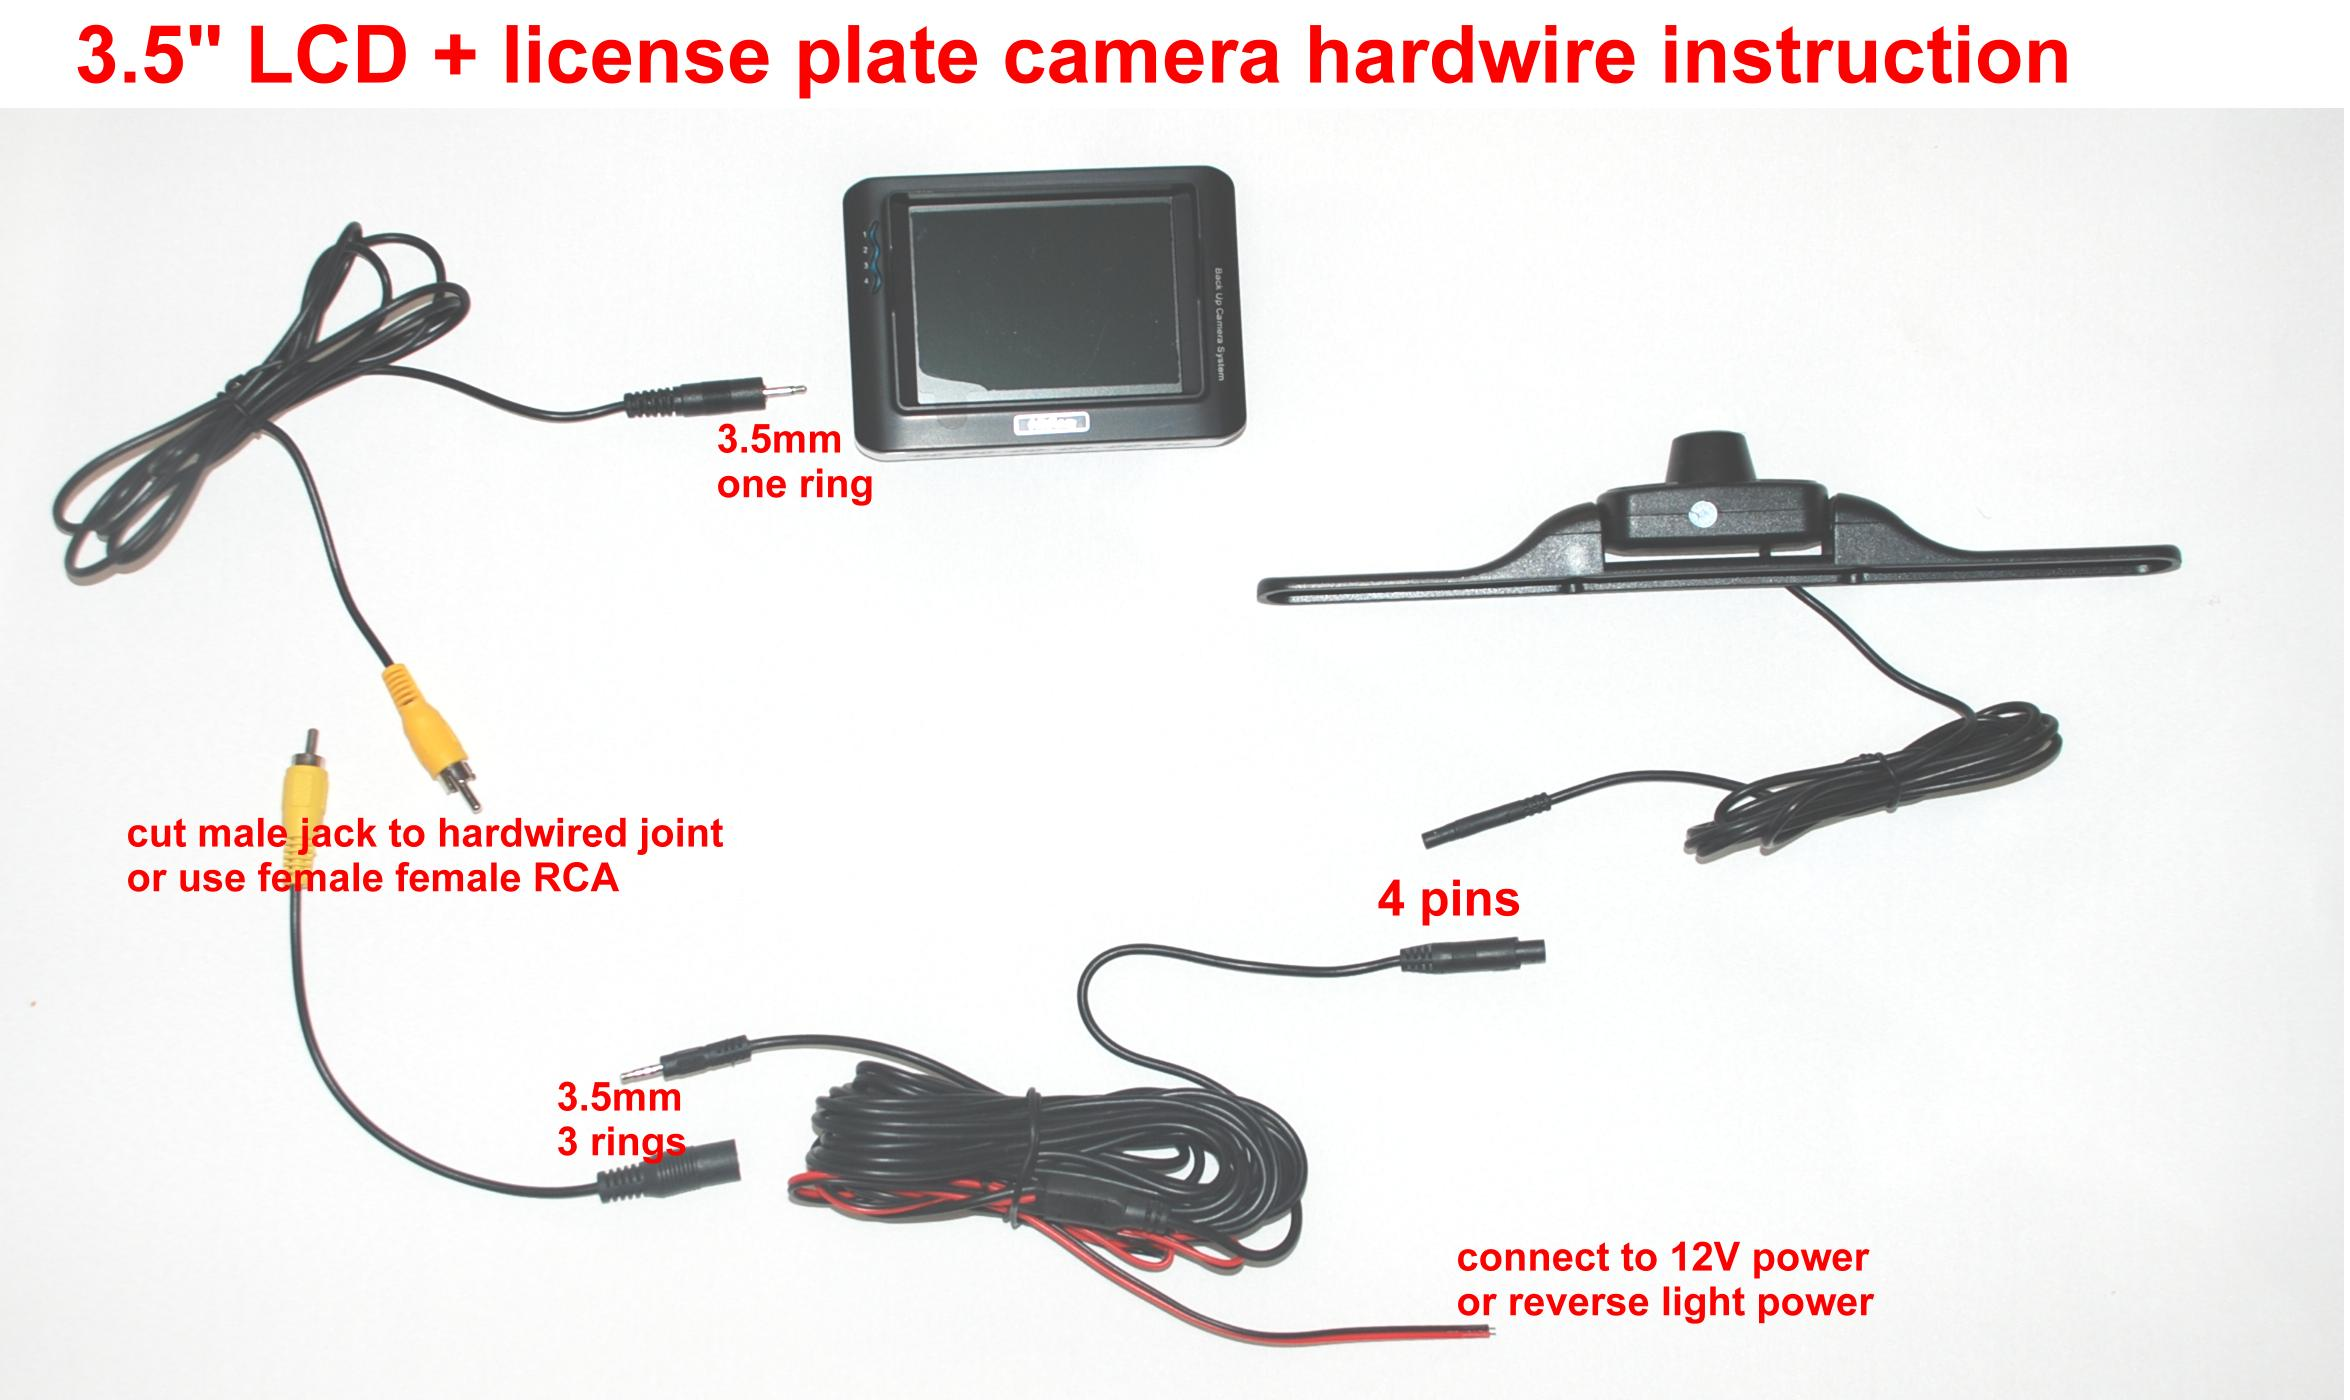 Back Up Camera Wiring | Wiring Diagram F Backup Camera Wiring Harness on